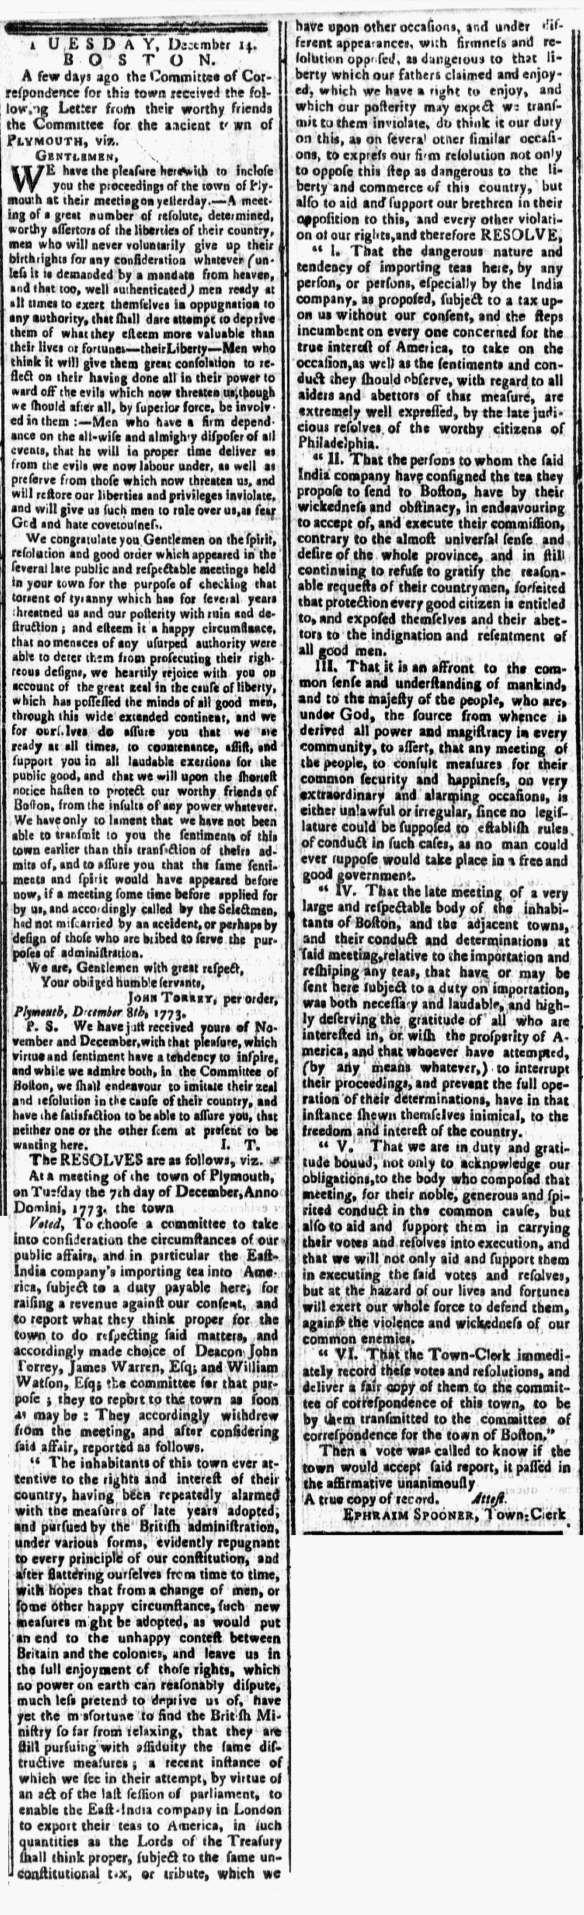 The_Massachusetts_Spy_Or,_Thomas's_Boston_Journal_1773-12-16_[2].png